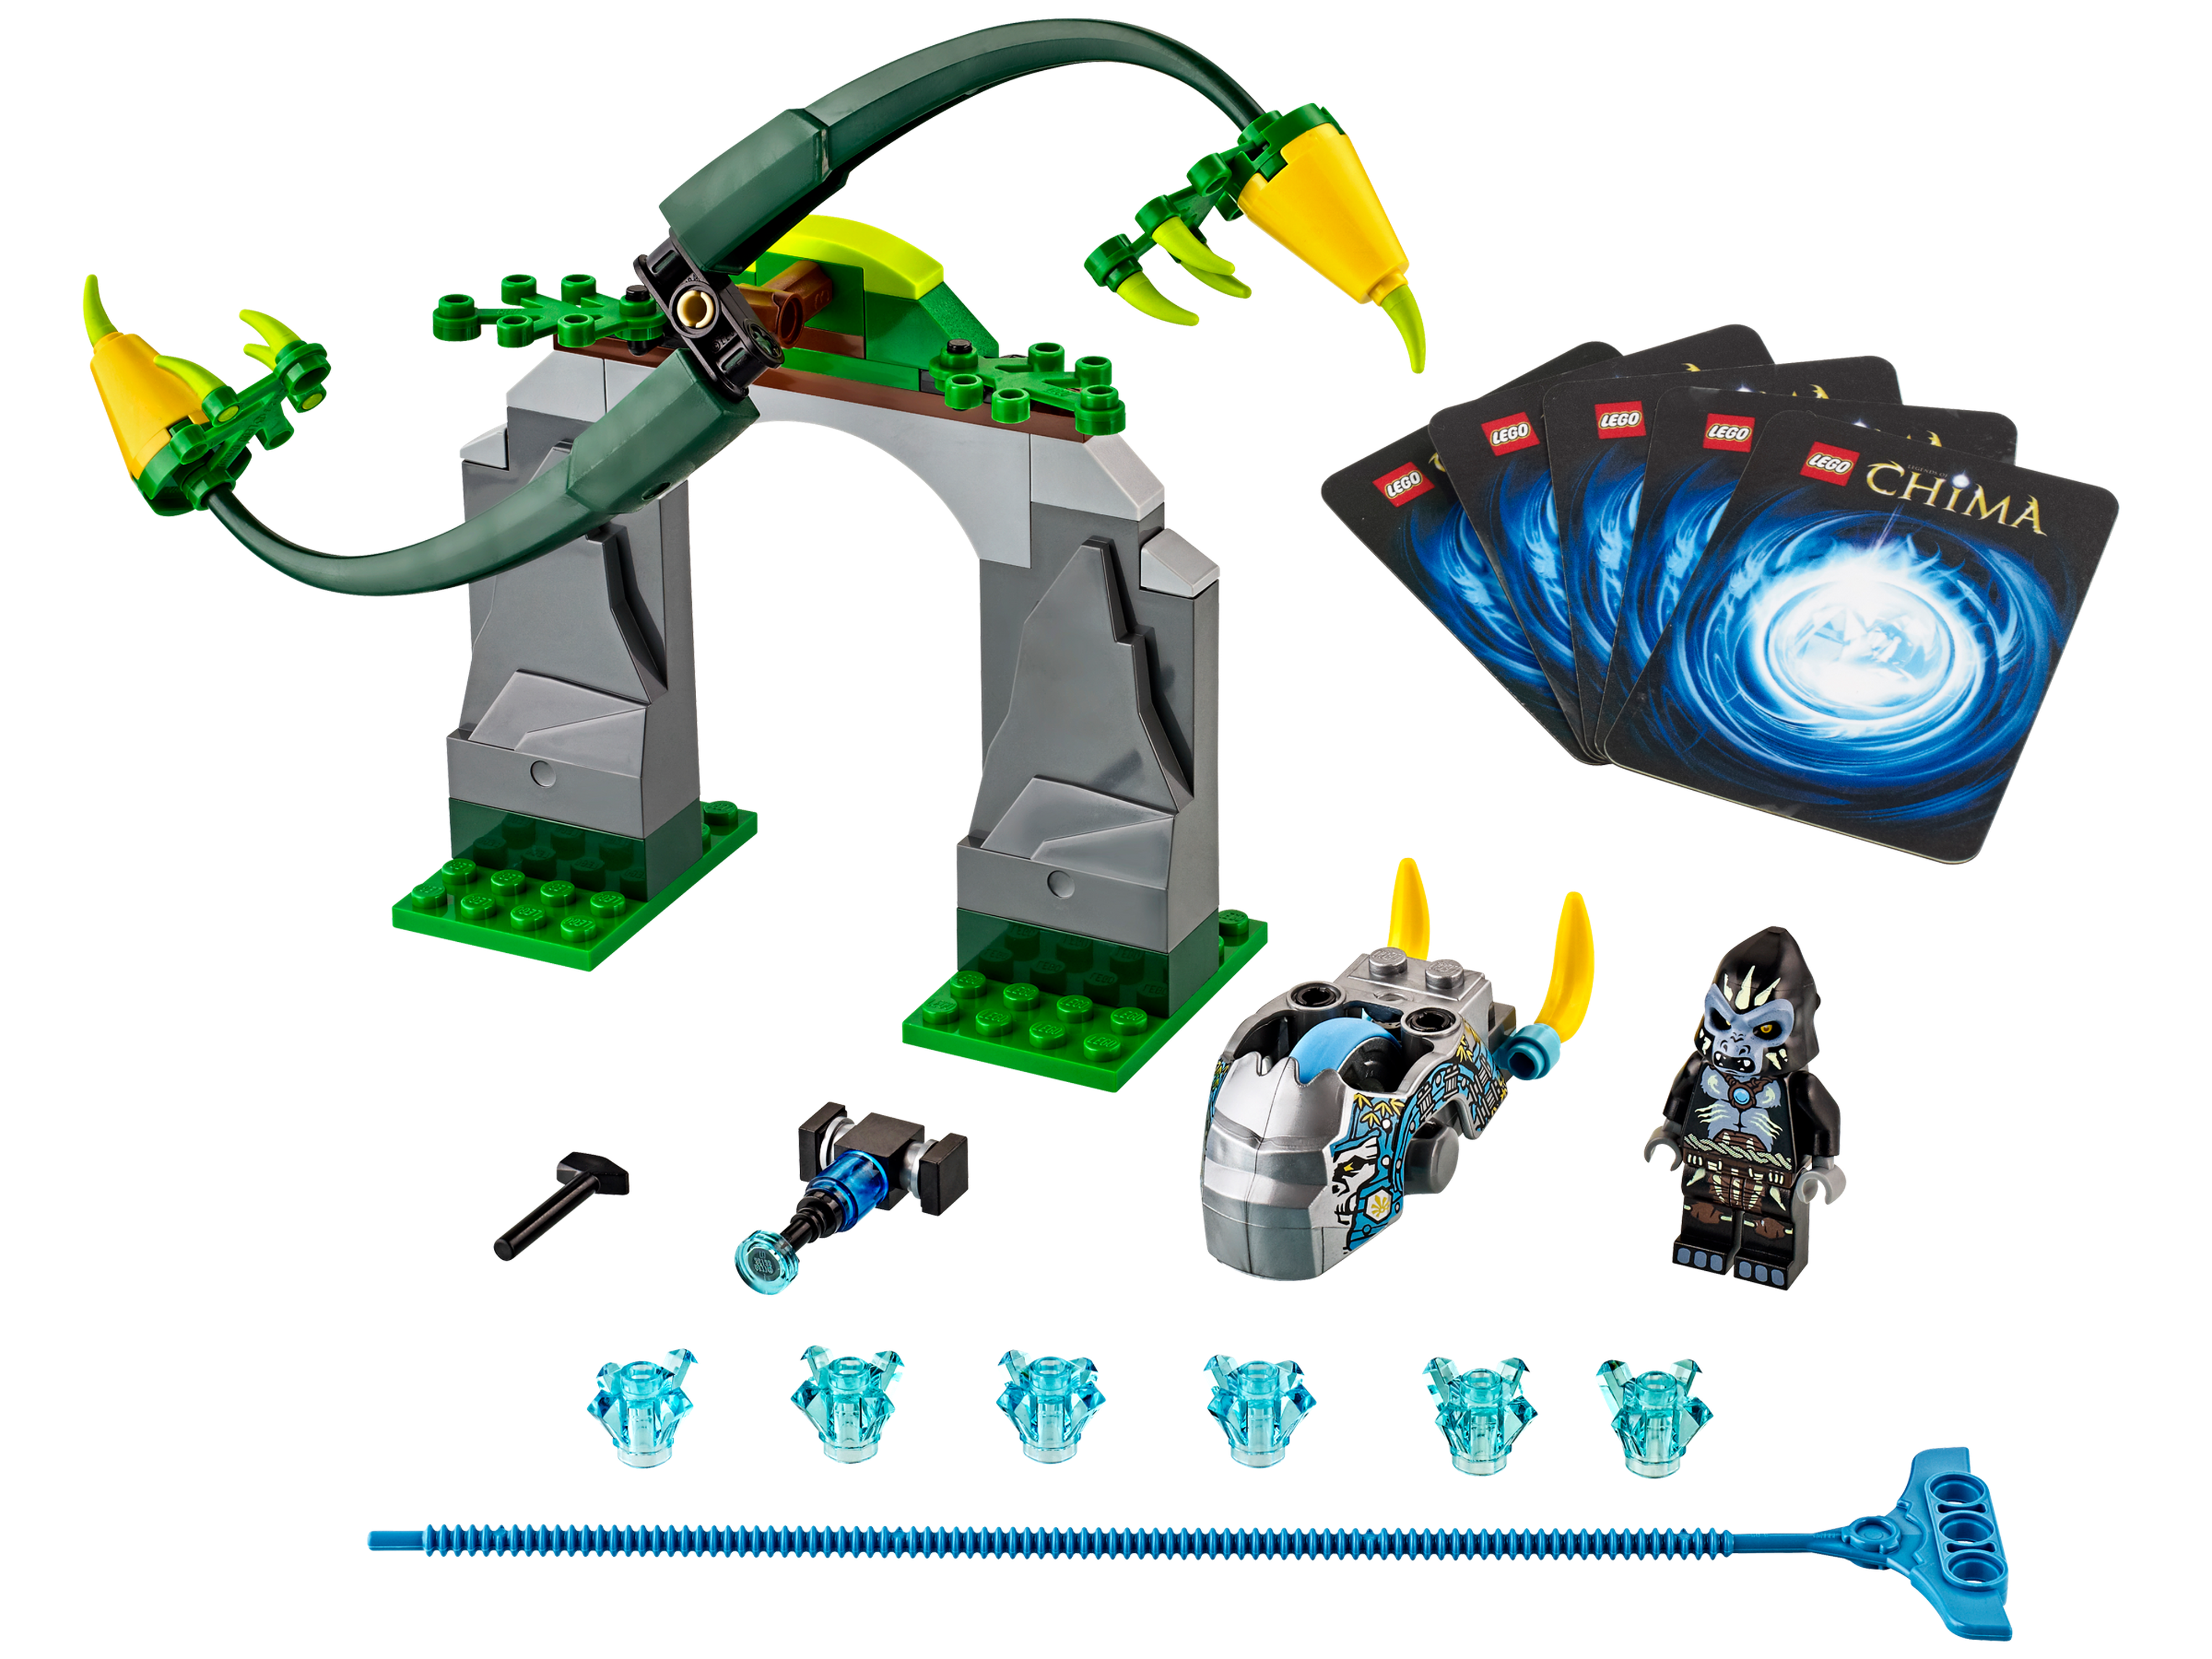 http://img1.wikia.nocookie.net/__cb20130414215013/lego/images/4/4e/70109.png